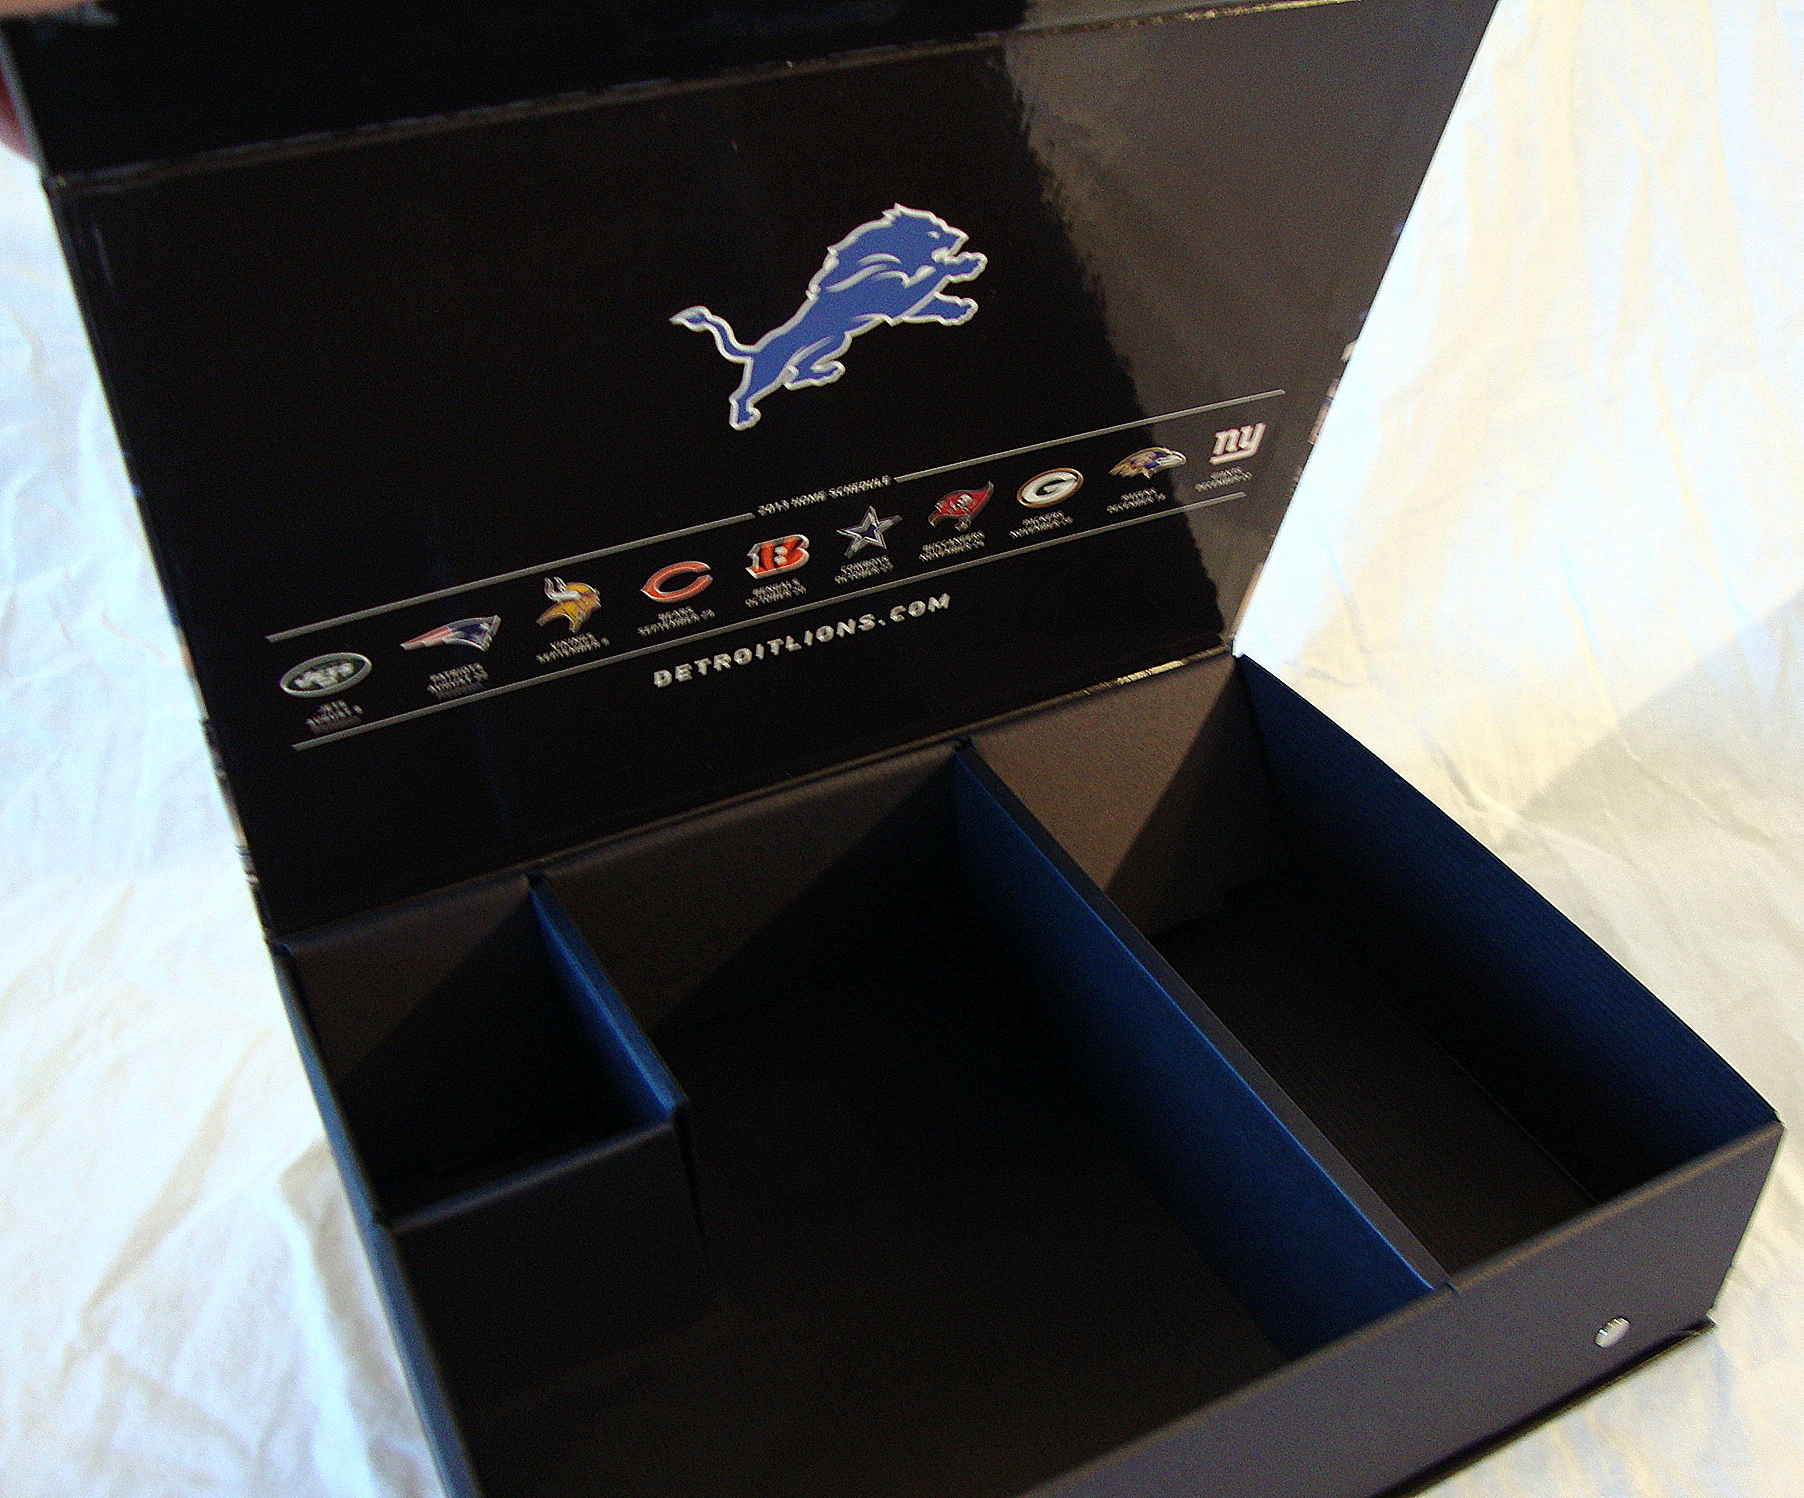 detroit-lions-2013-inside-of-club-seat-box